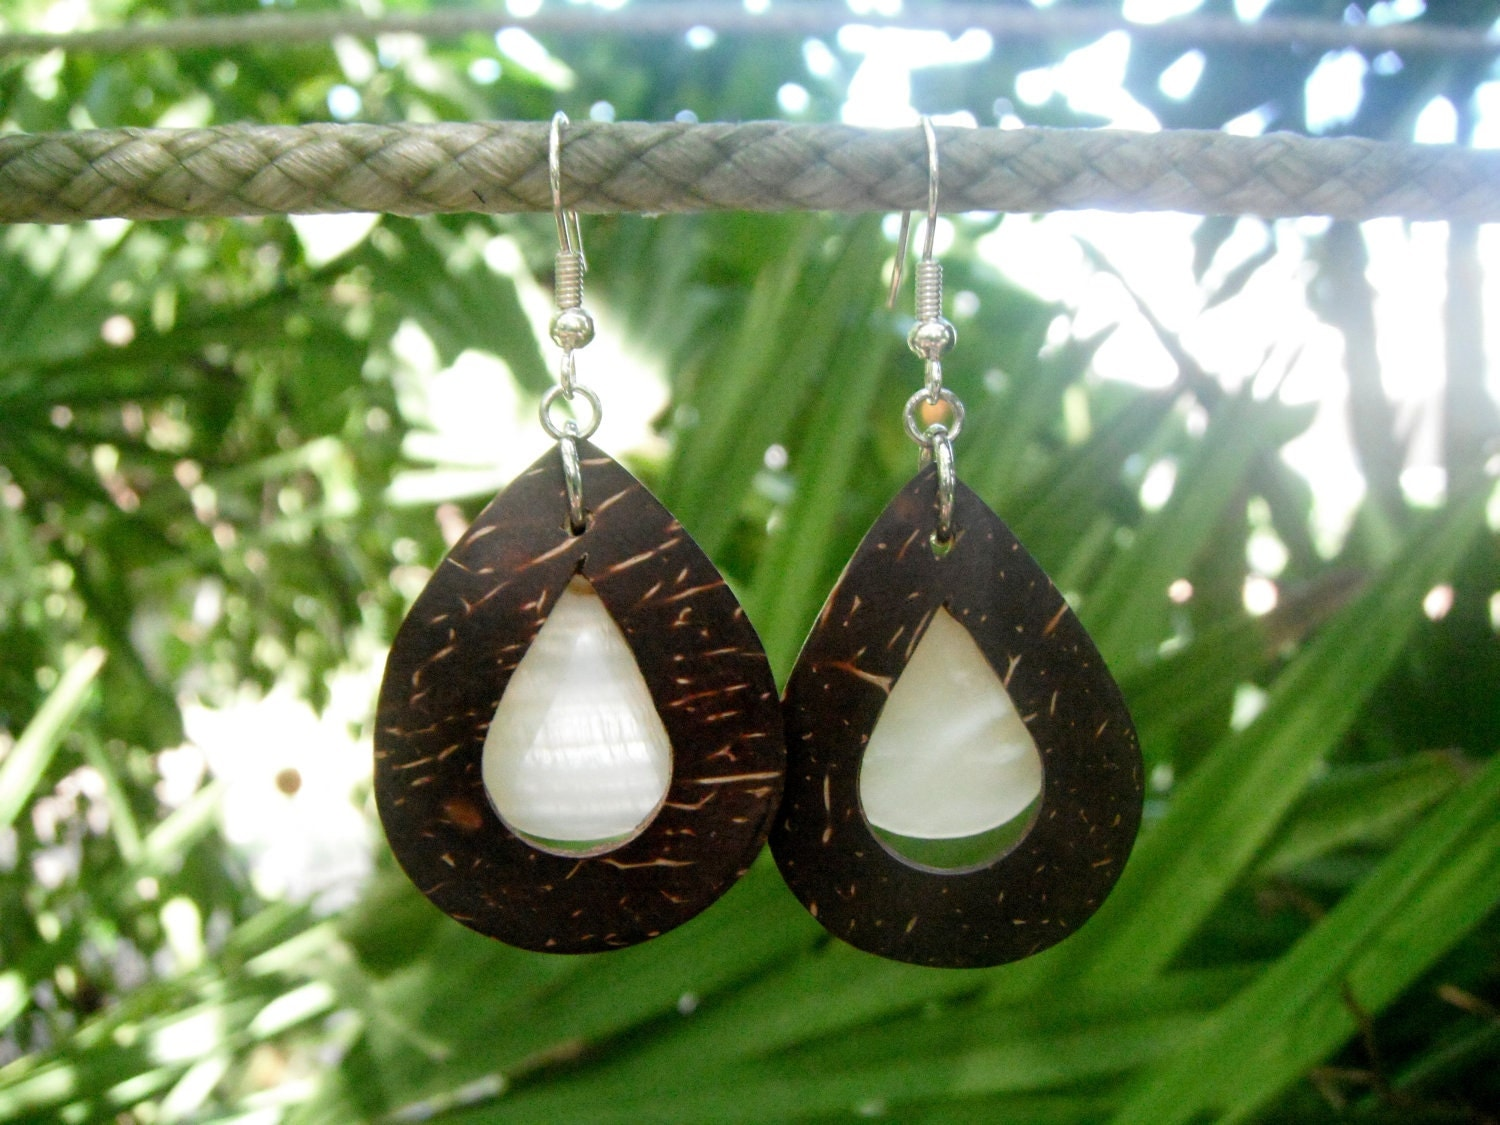 Coconut Earrings with Mother of Pearl Drops